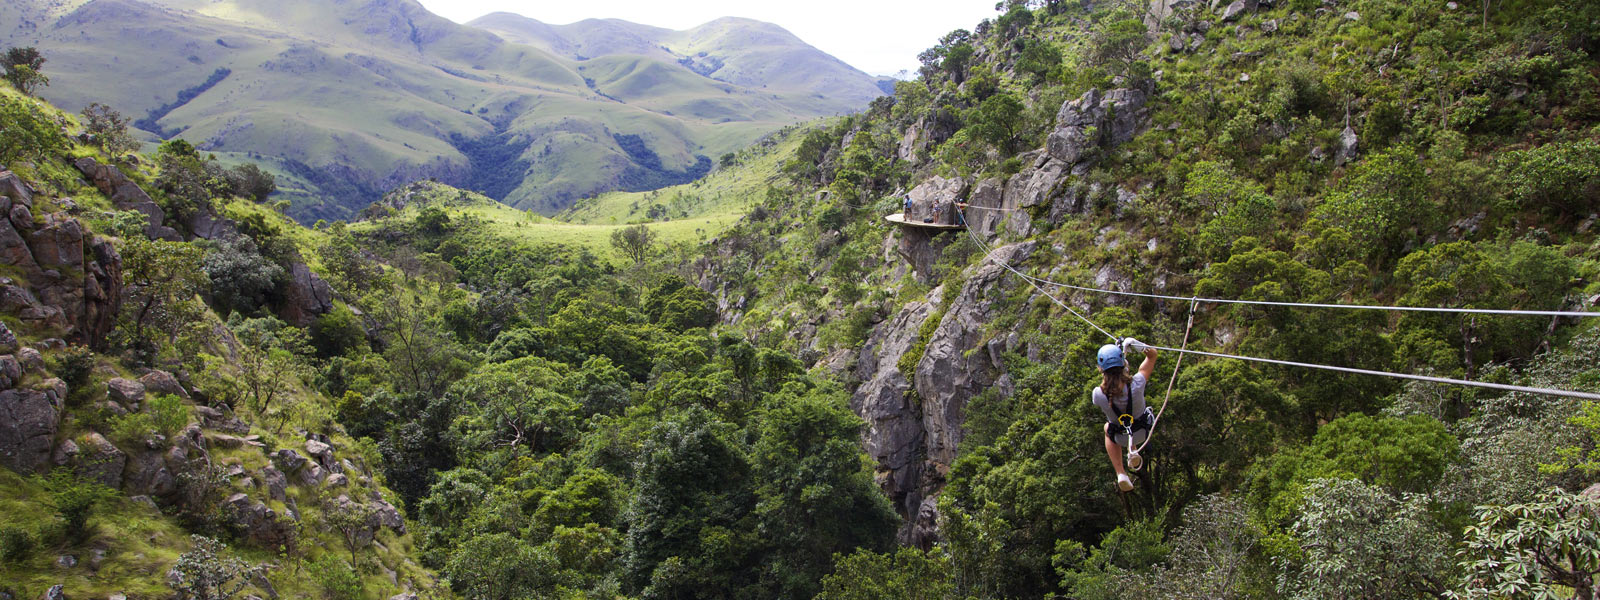 Kingdom of Swaziland Holiday, Malolotja, Swaziland, Africa, Sliders upview